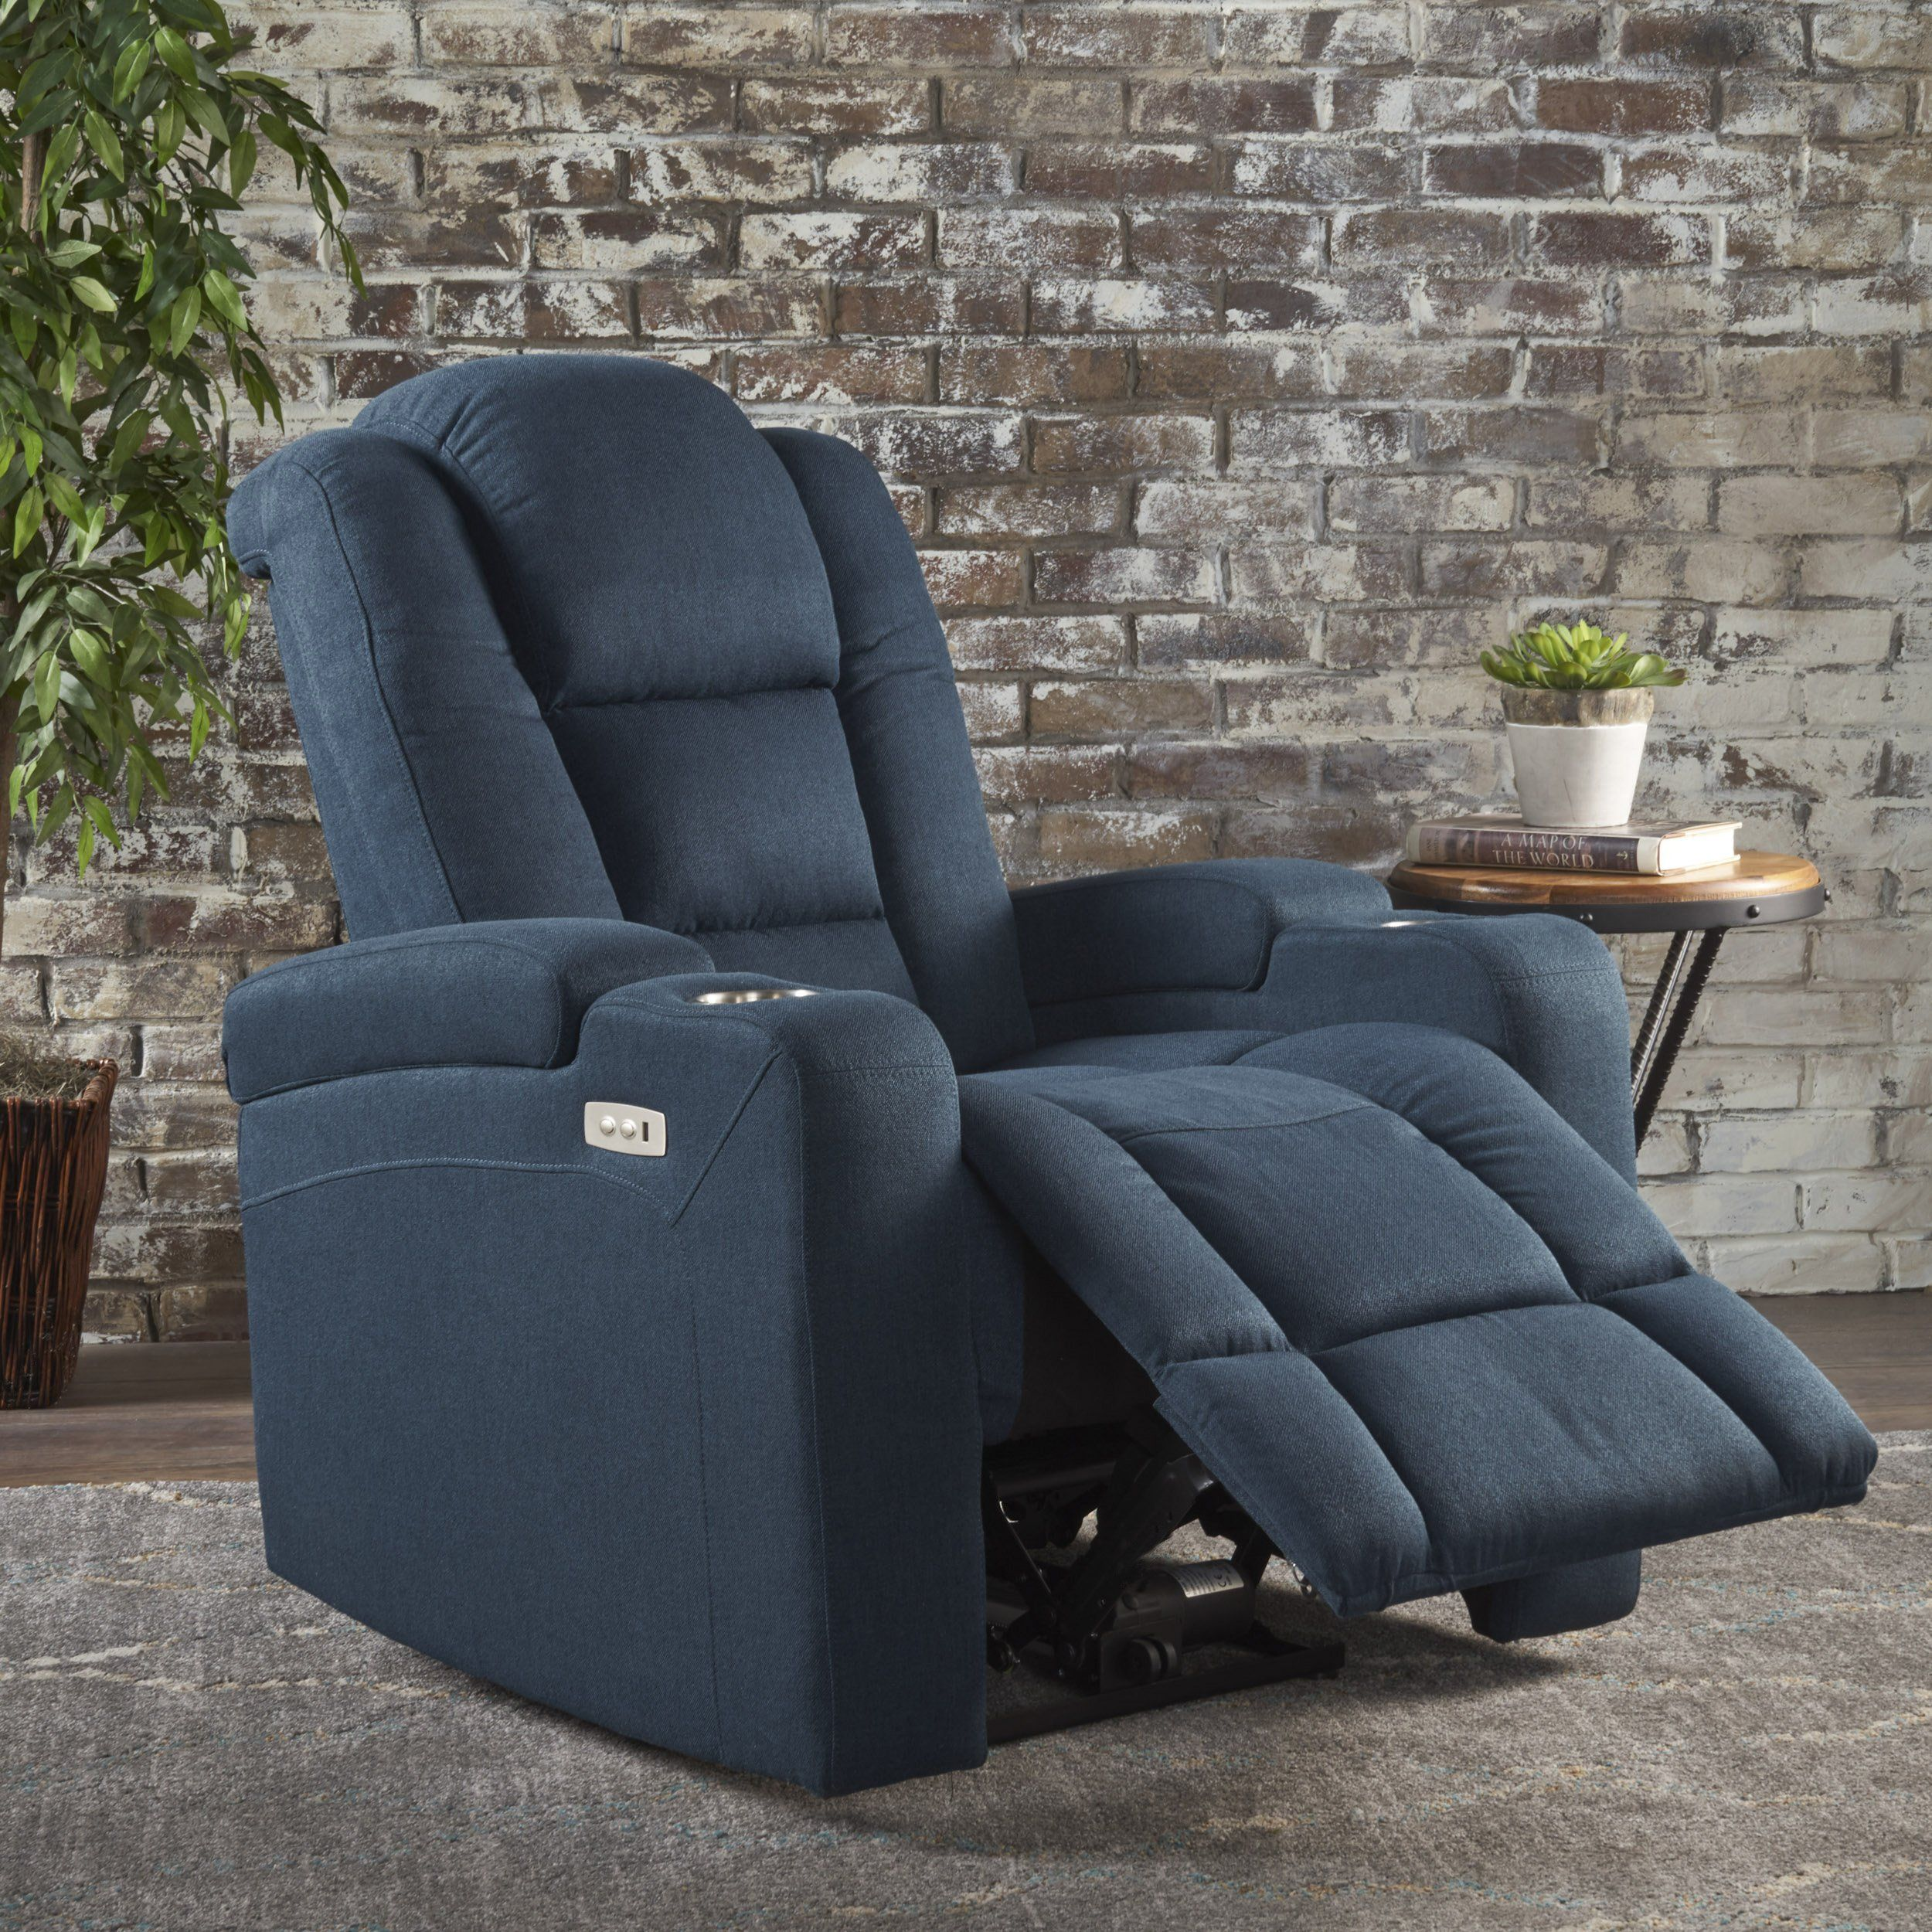 Everette Fabric Power Recliner With Cup Holder Usb Charger And Storage In 2021 Power Recliners Recliner Navy Blue Fabric Recliner with cup holder and storage